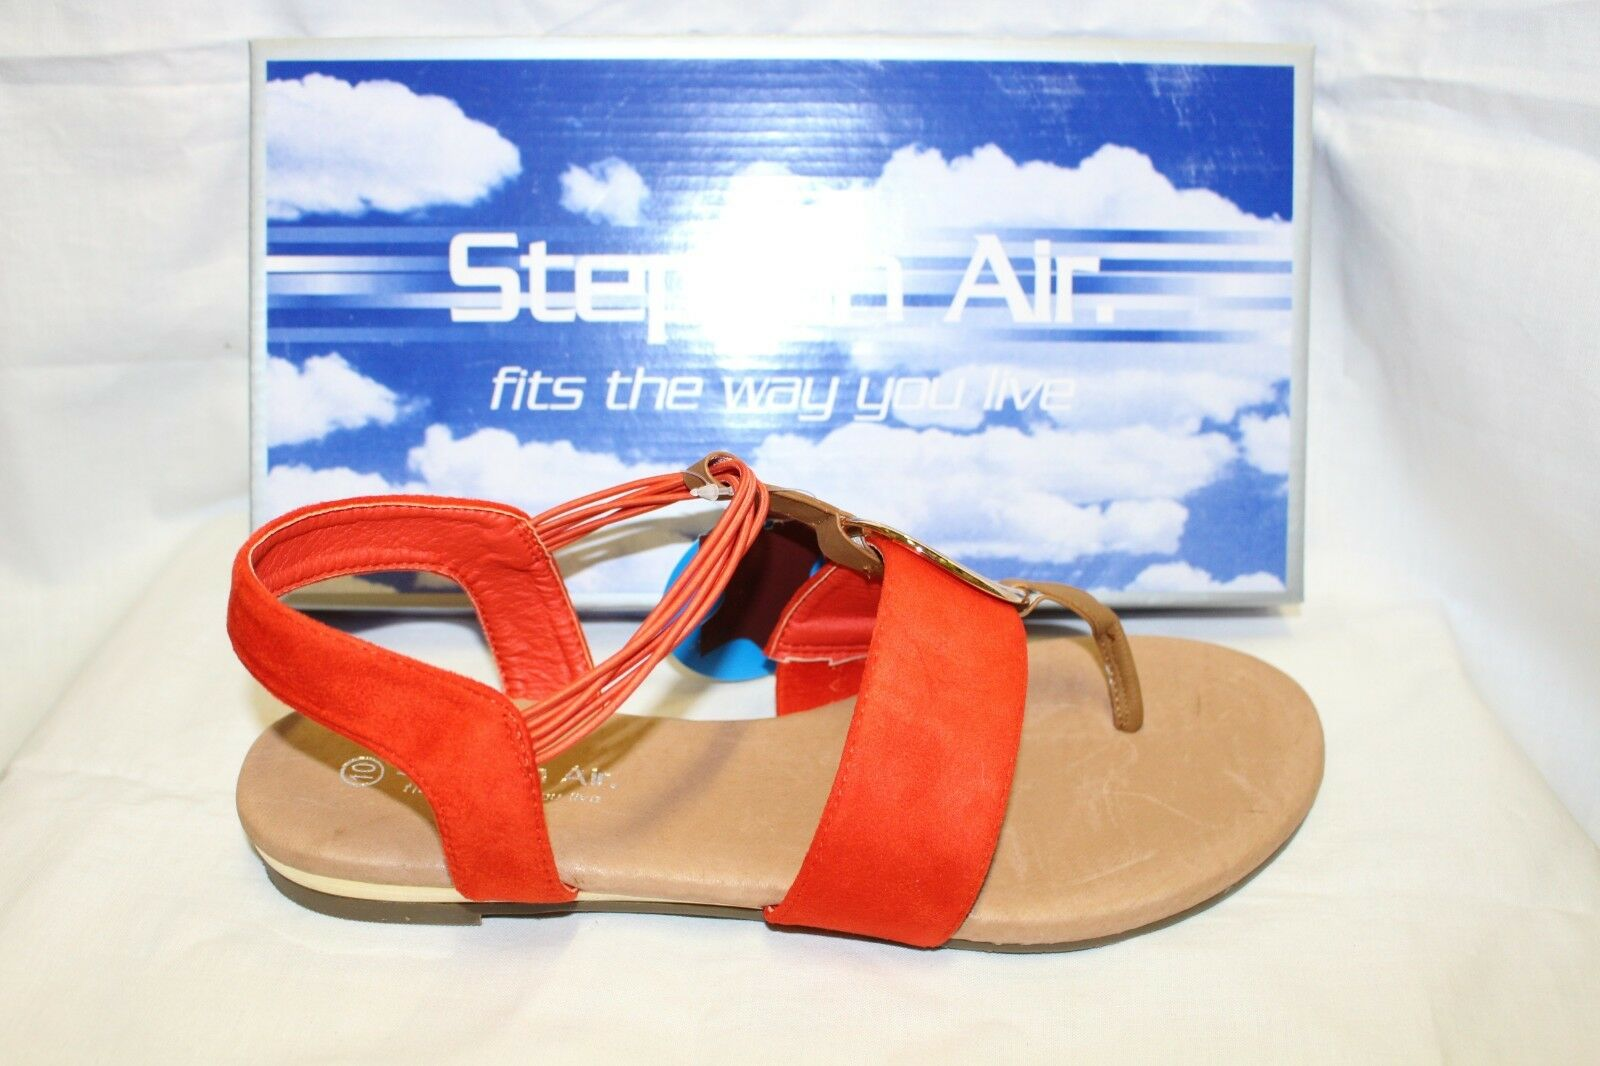 LADIES SHOES FOOTWEAR - Step on Air sandal thong Musk coral